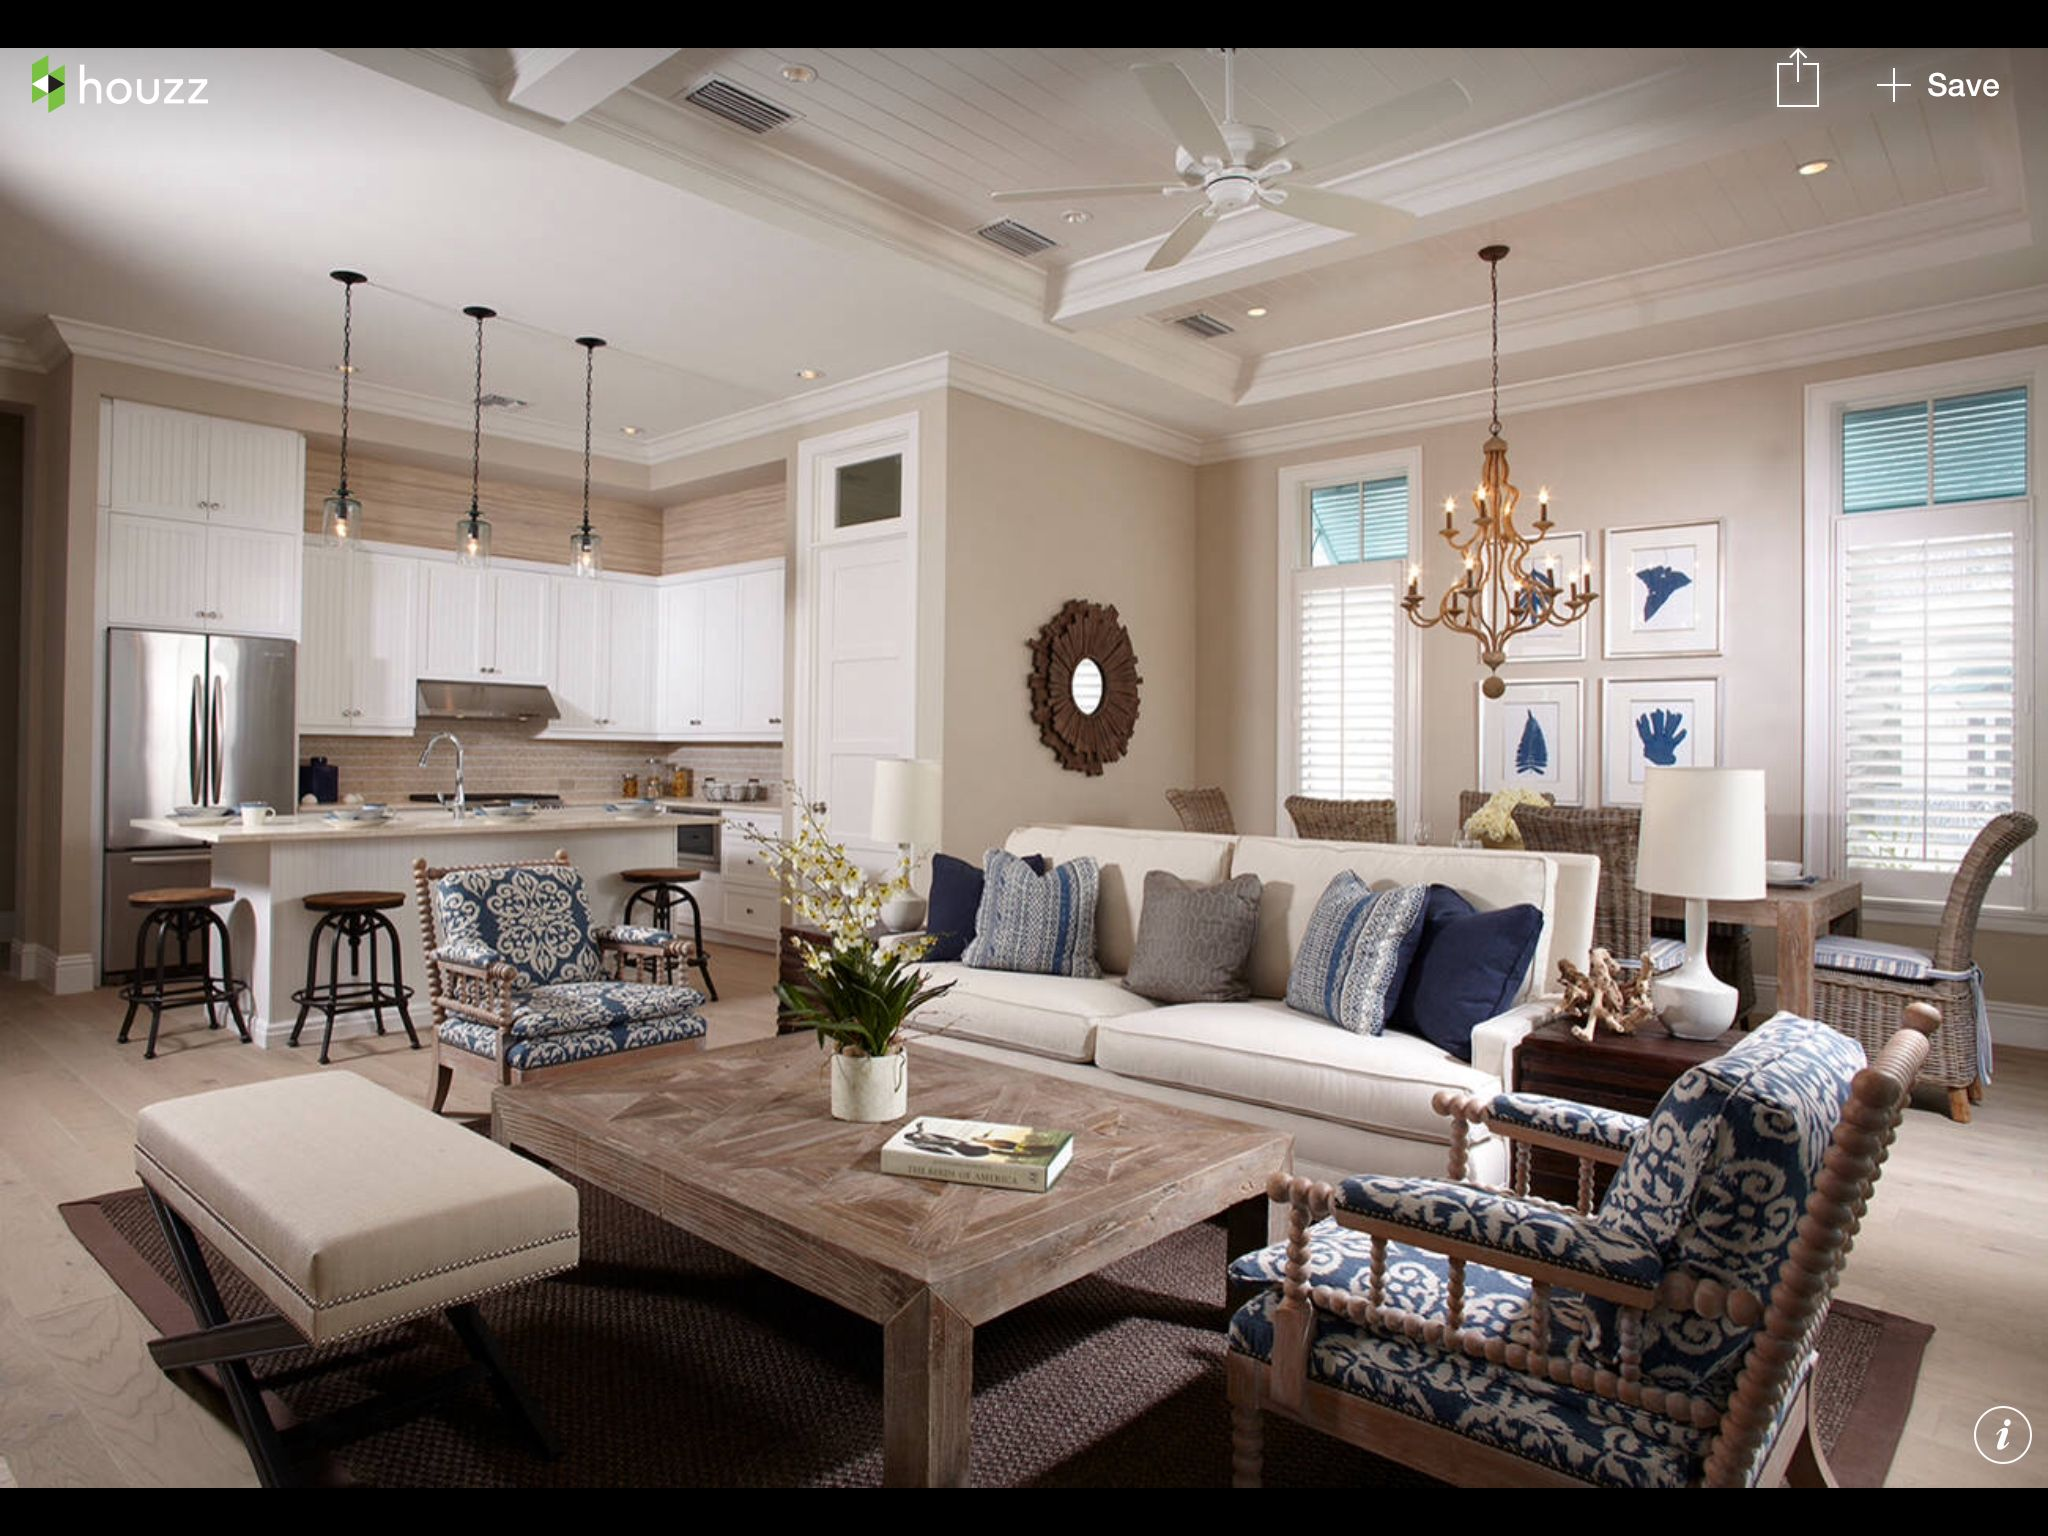 Living Room Design Houzz Impressive Living Room Inspiration From Houzz  House Inspiration  Pinterest Design Ideas